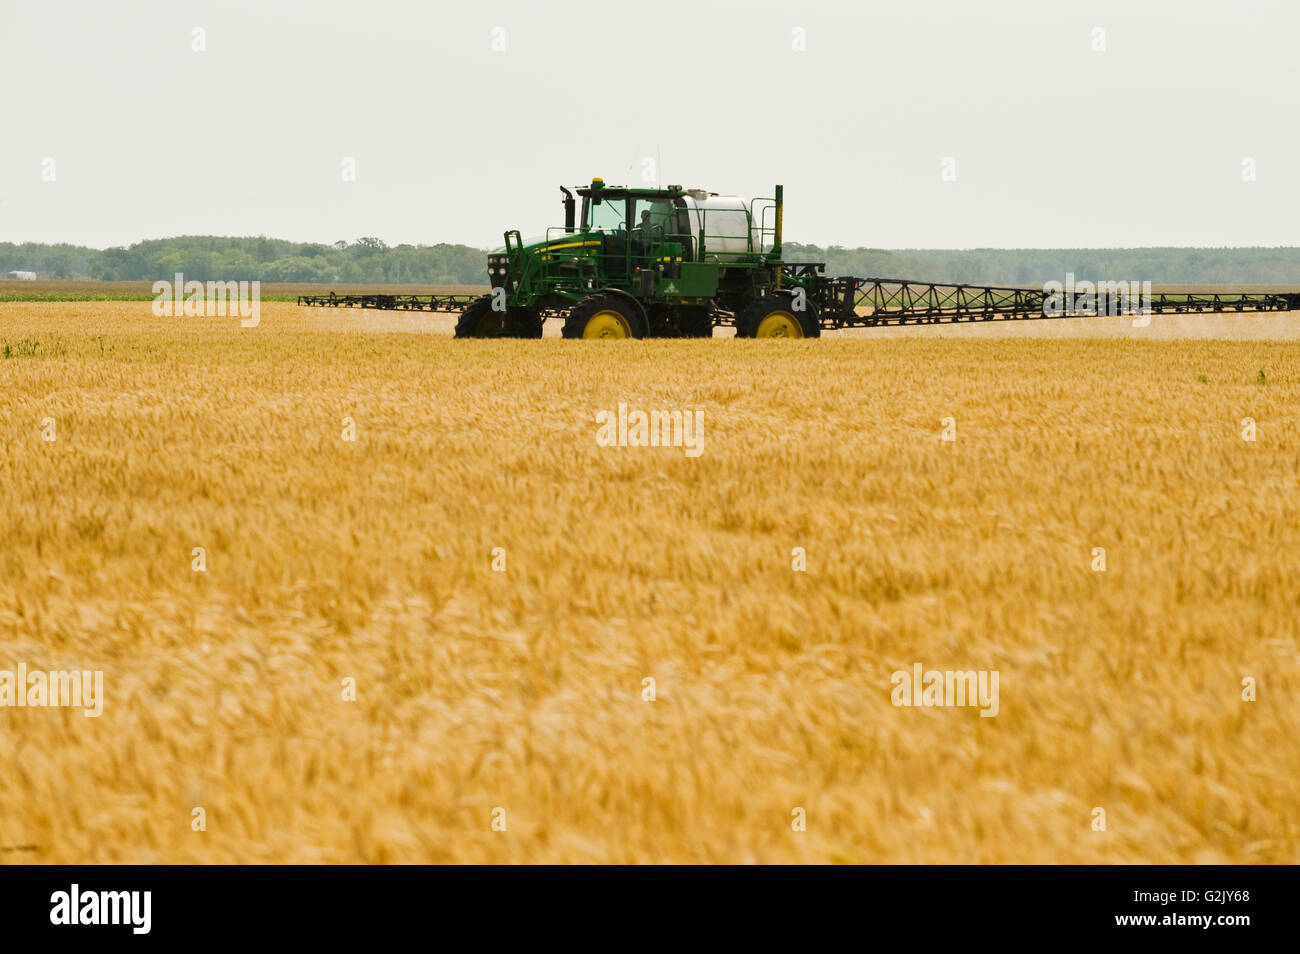 a high clearance sprayer gives a chemical application of herbicide to mature  winter wheat, near Carey, Manitoba, - Stock Image